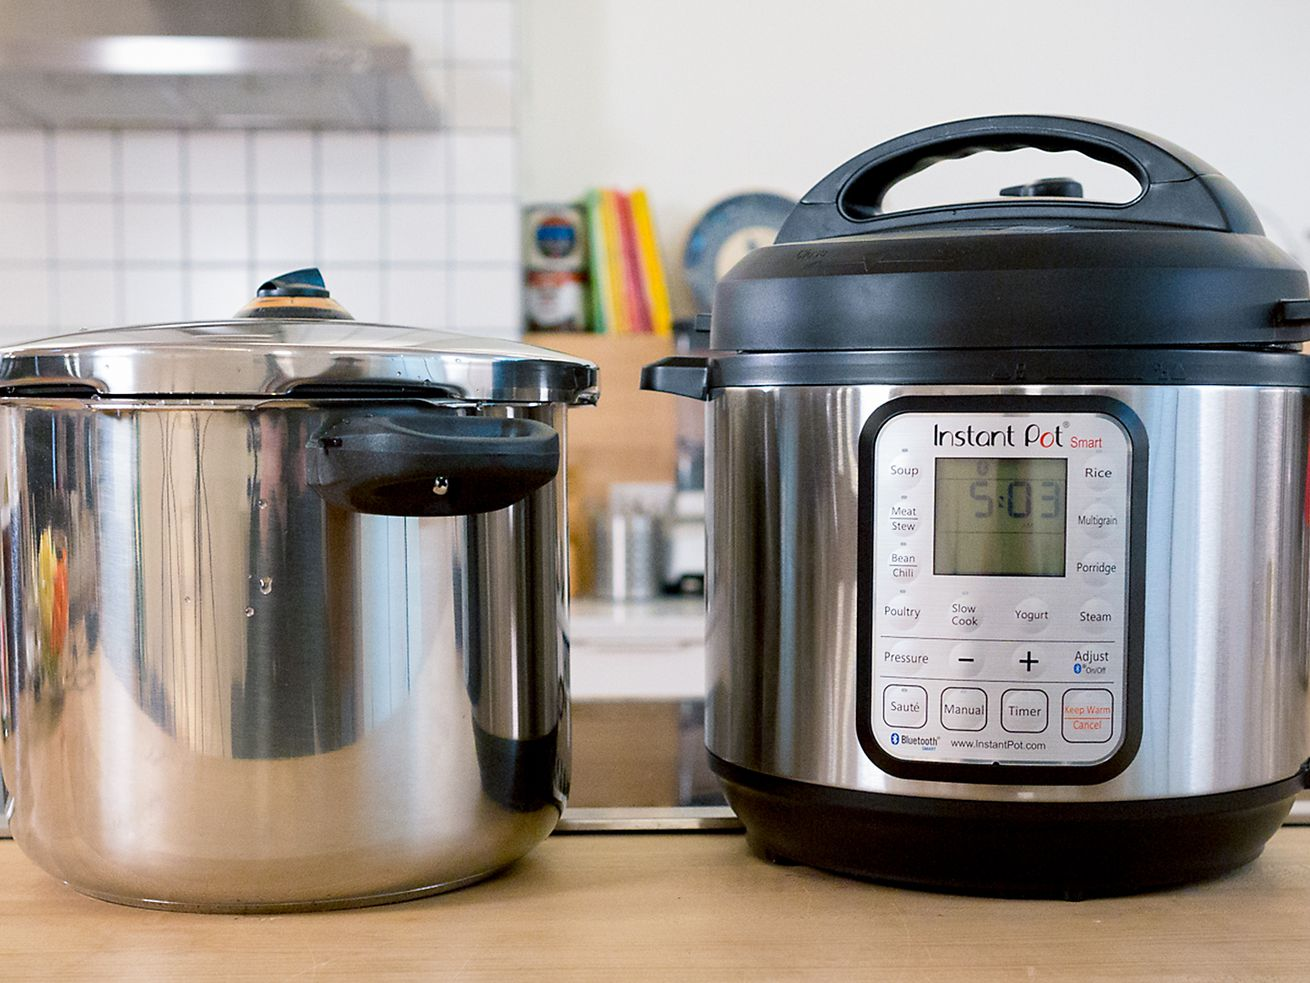 The Black Friday Deals on Kitchen Gadgets to Know About